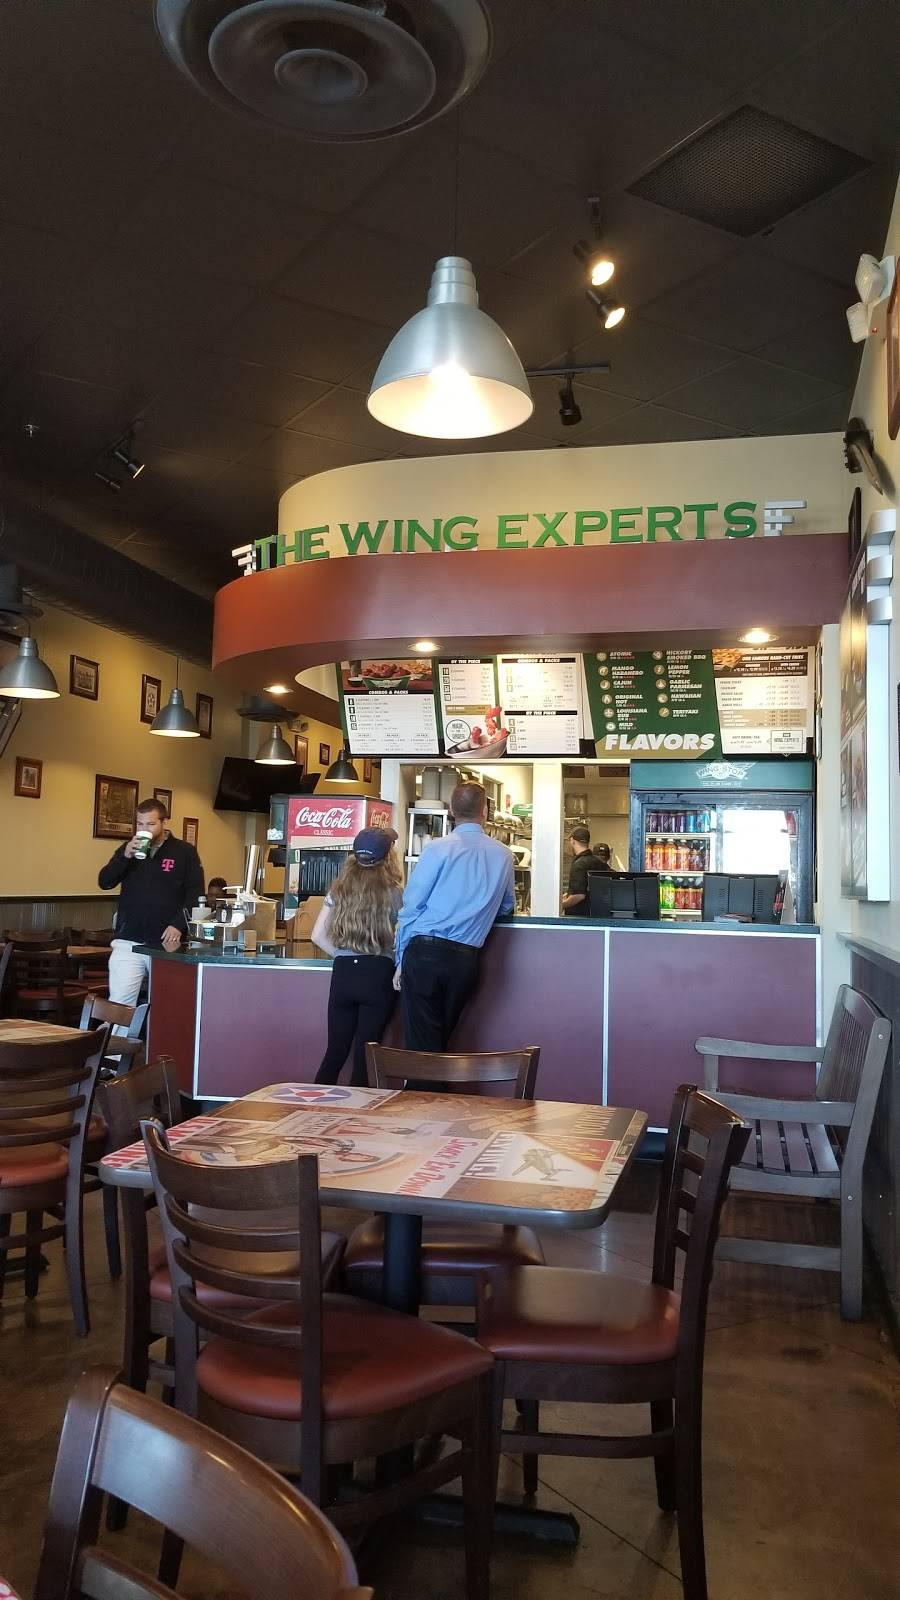 Wingstop | restaurant | 28517 Schoolcraft Ste A-110, Livonia, MI 48150, USA | 7345229464 OR +1 734-522-9464